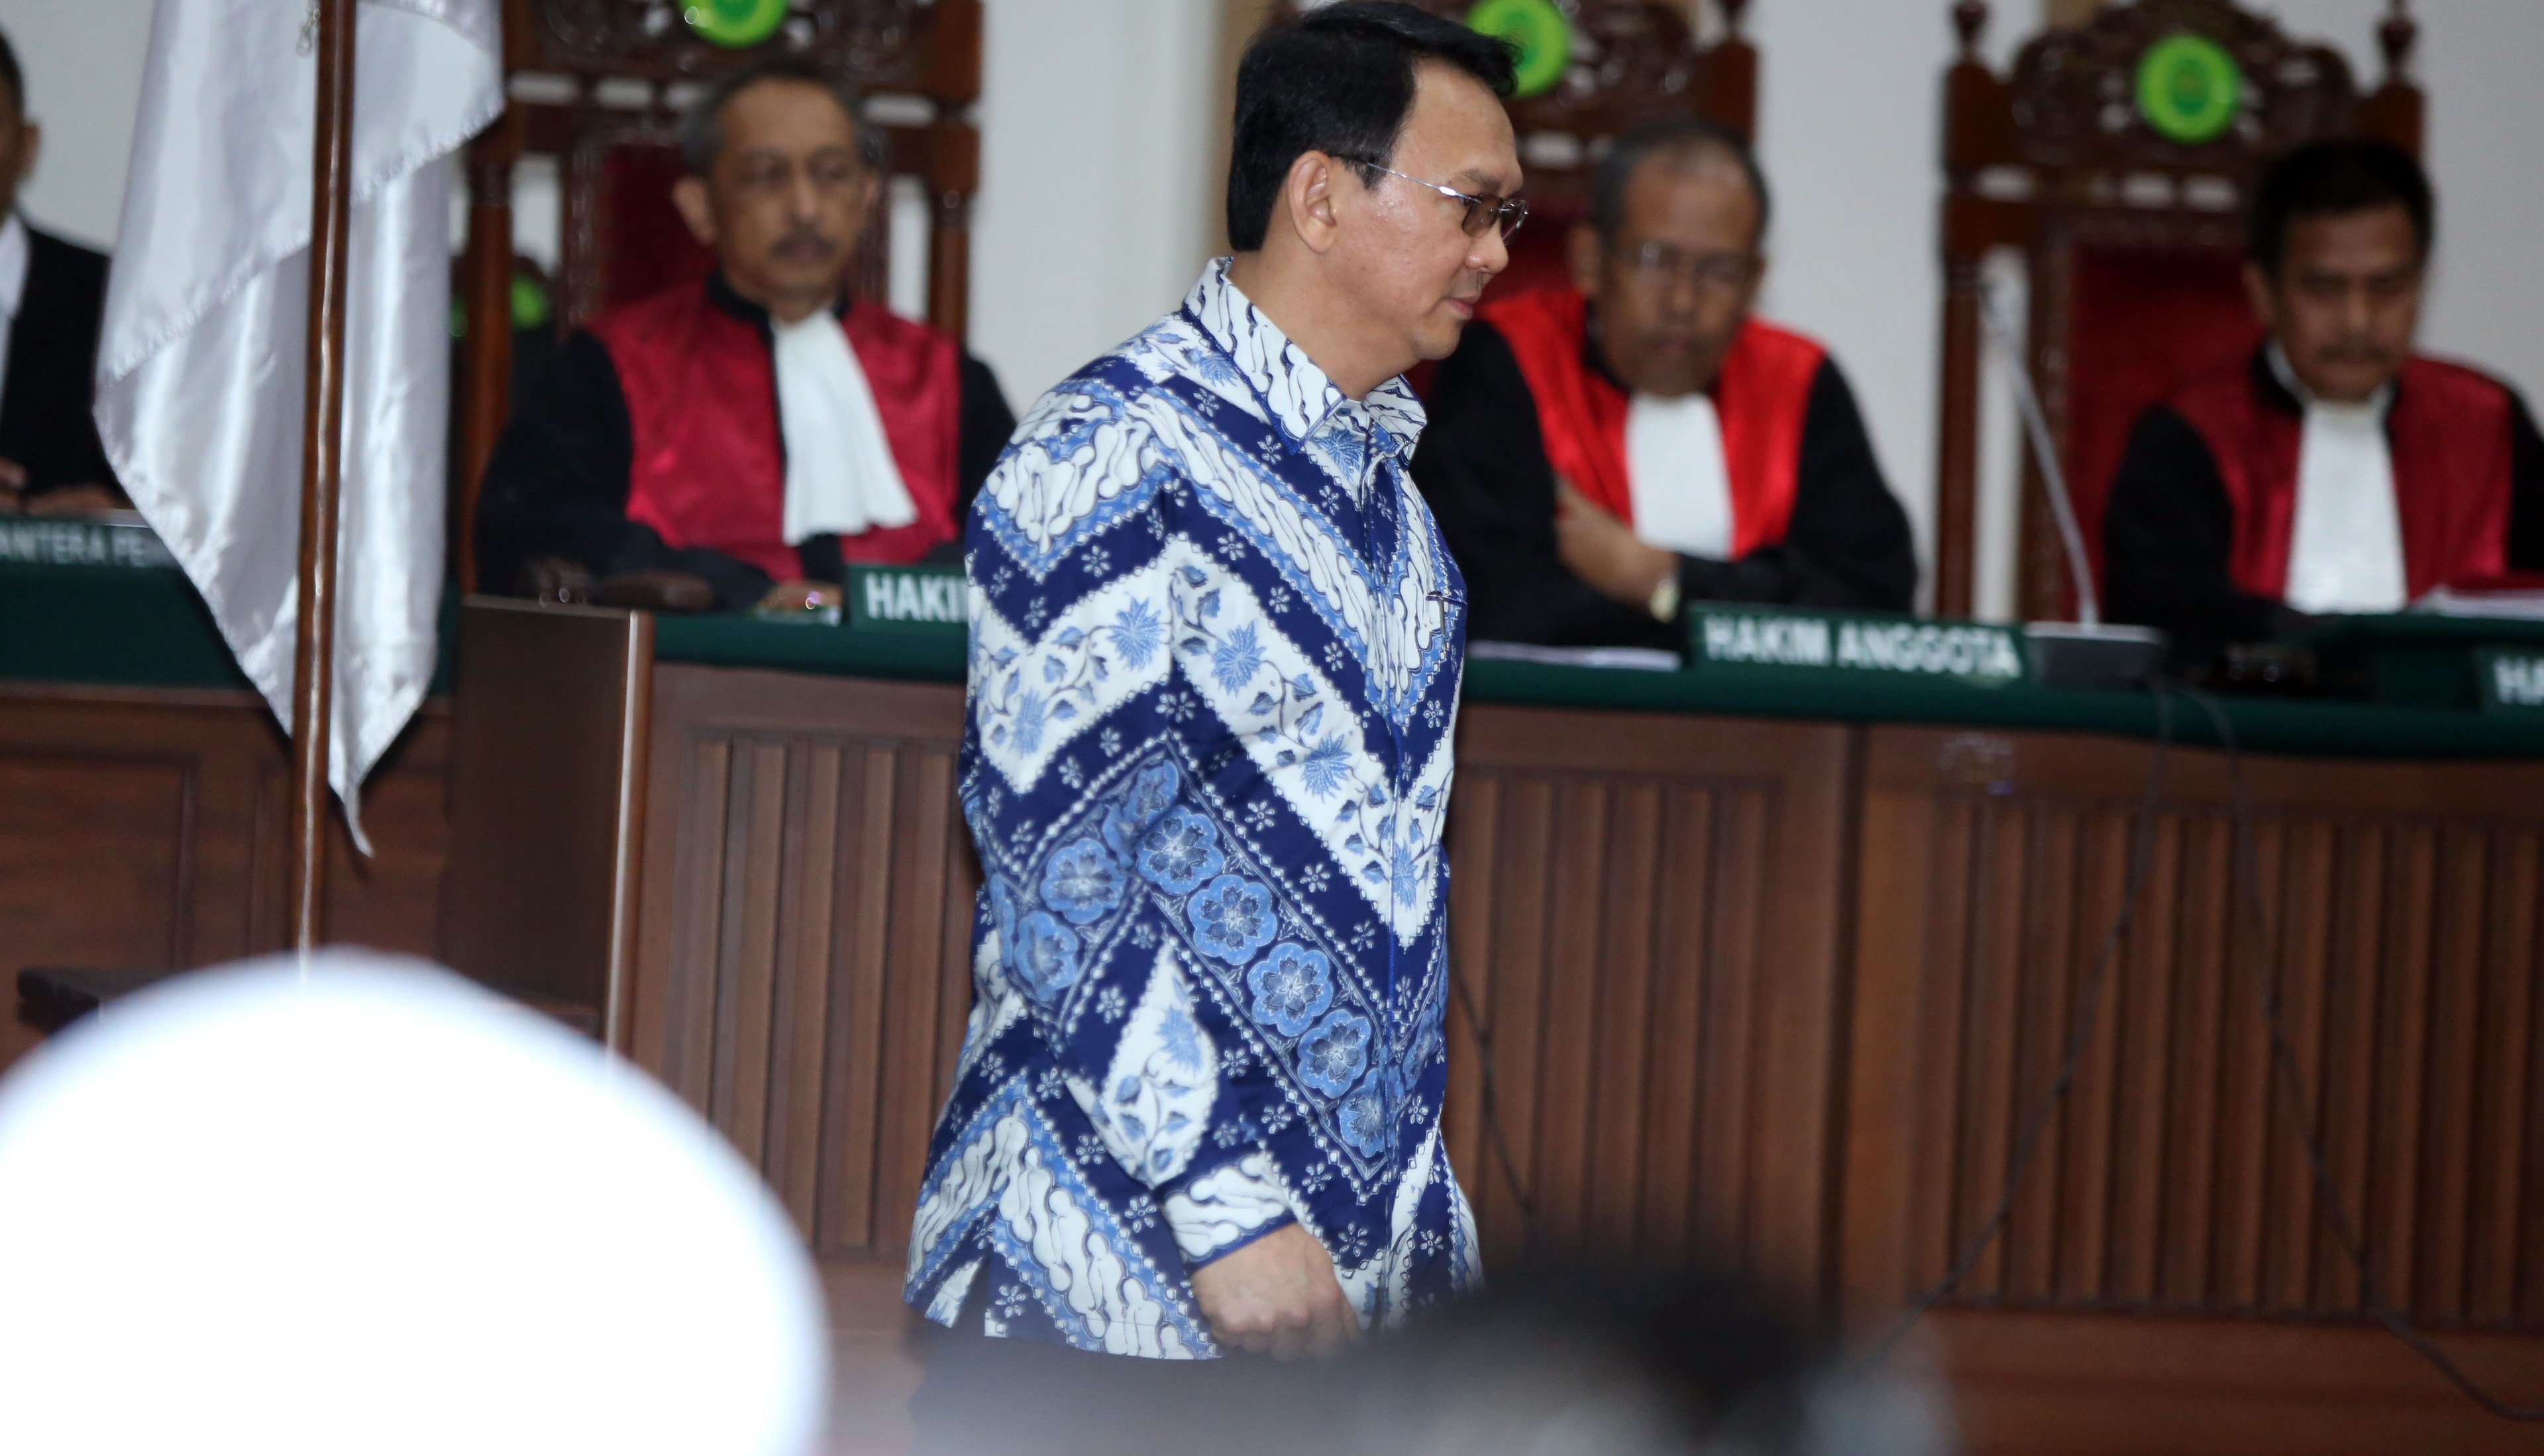 Governor Ahok arrives at a Jakarta courtroom for his verdict and sentence in his blasphemy trial. (Getty/Barcroft Media)